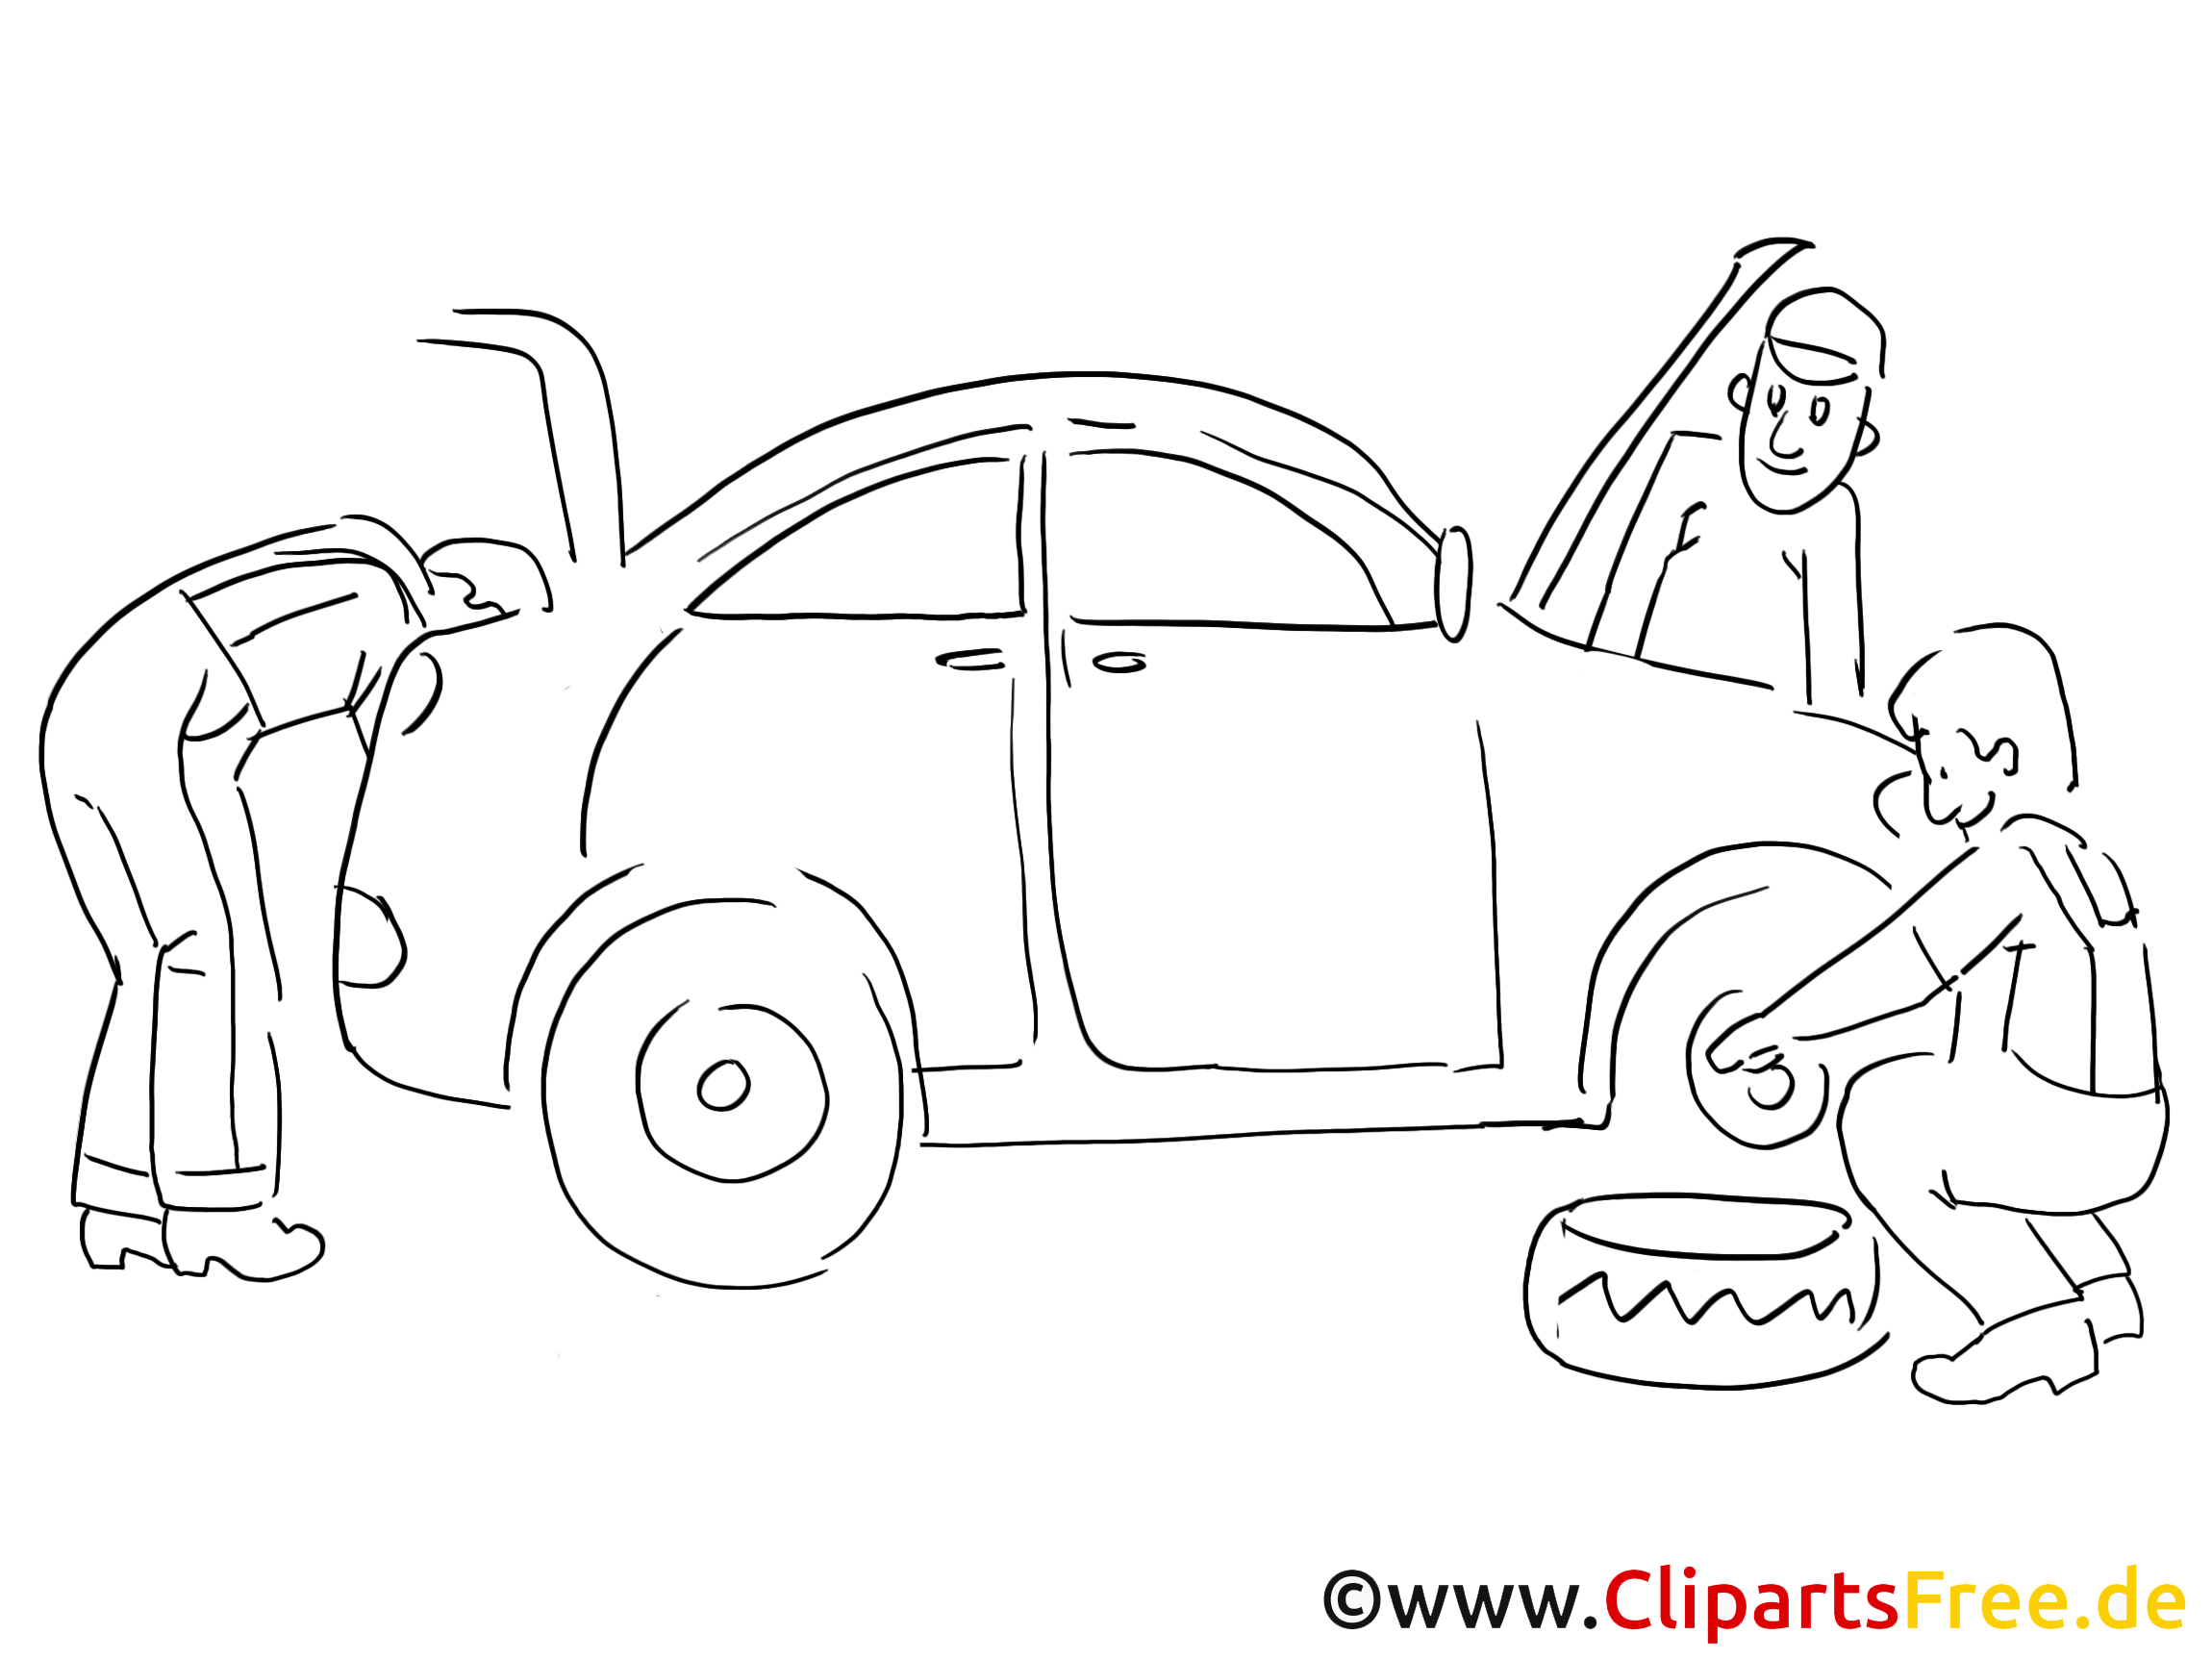 Garage automobile de coloriage page voitures dessin picture image graphic clip art - Dessin garage ...